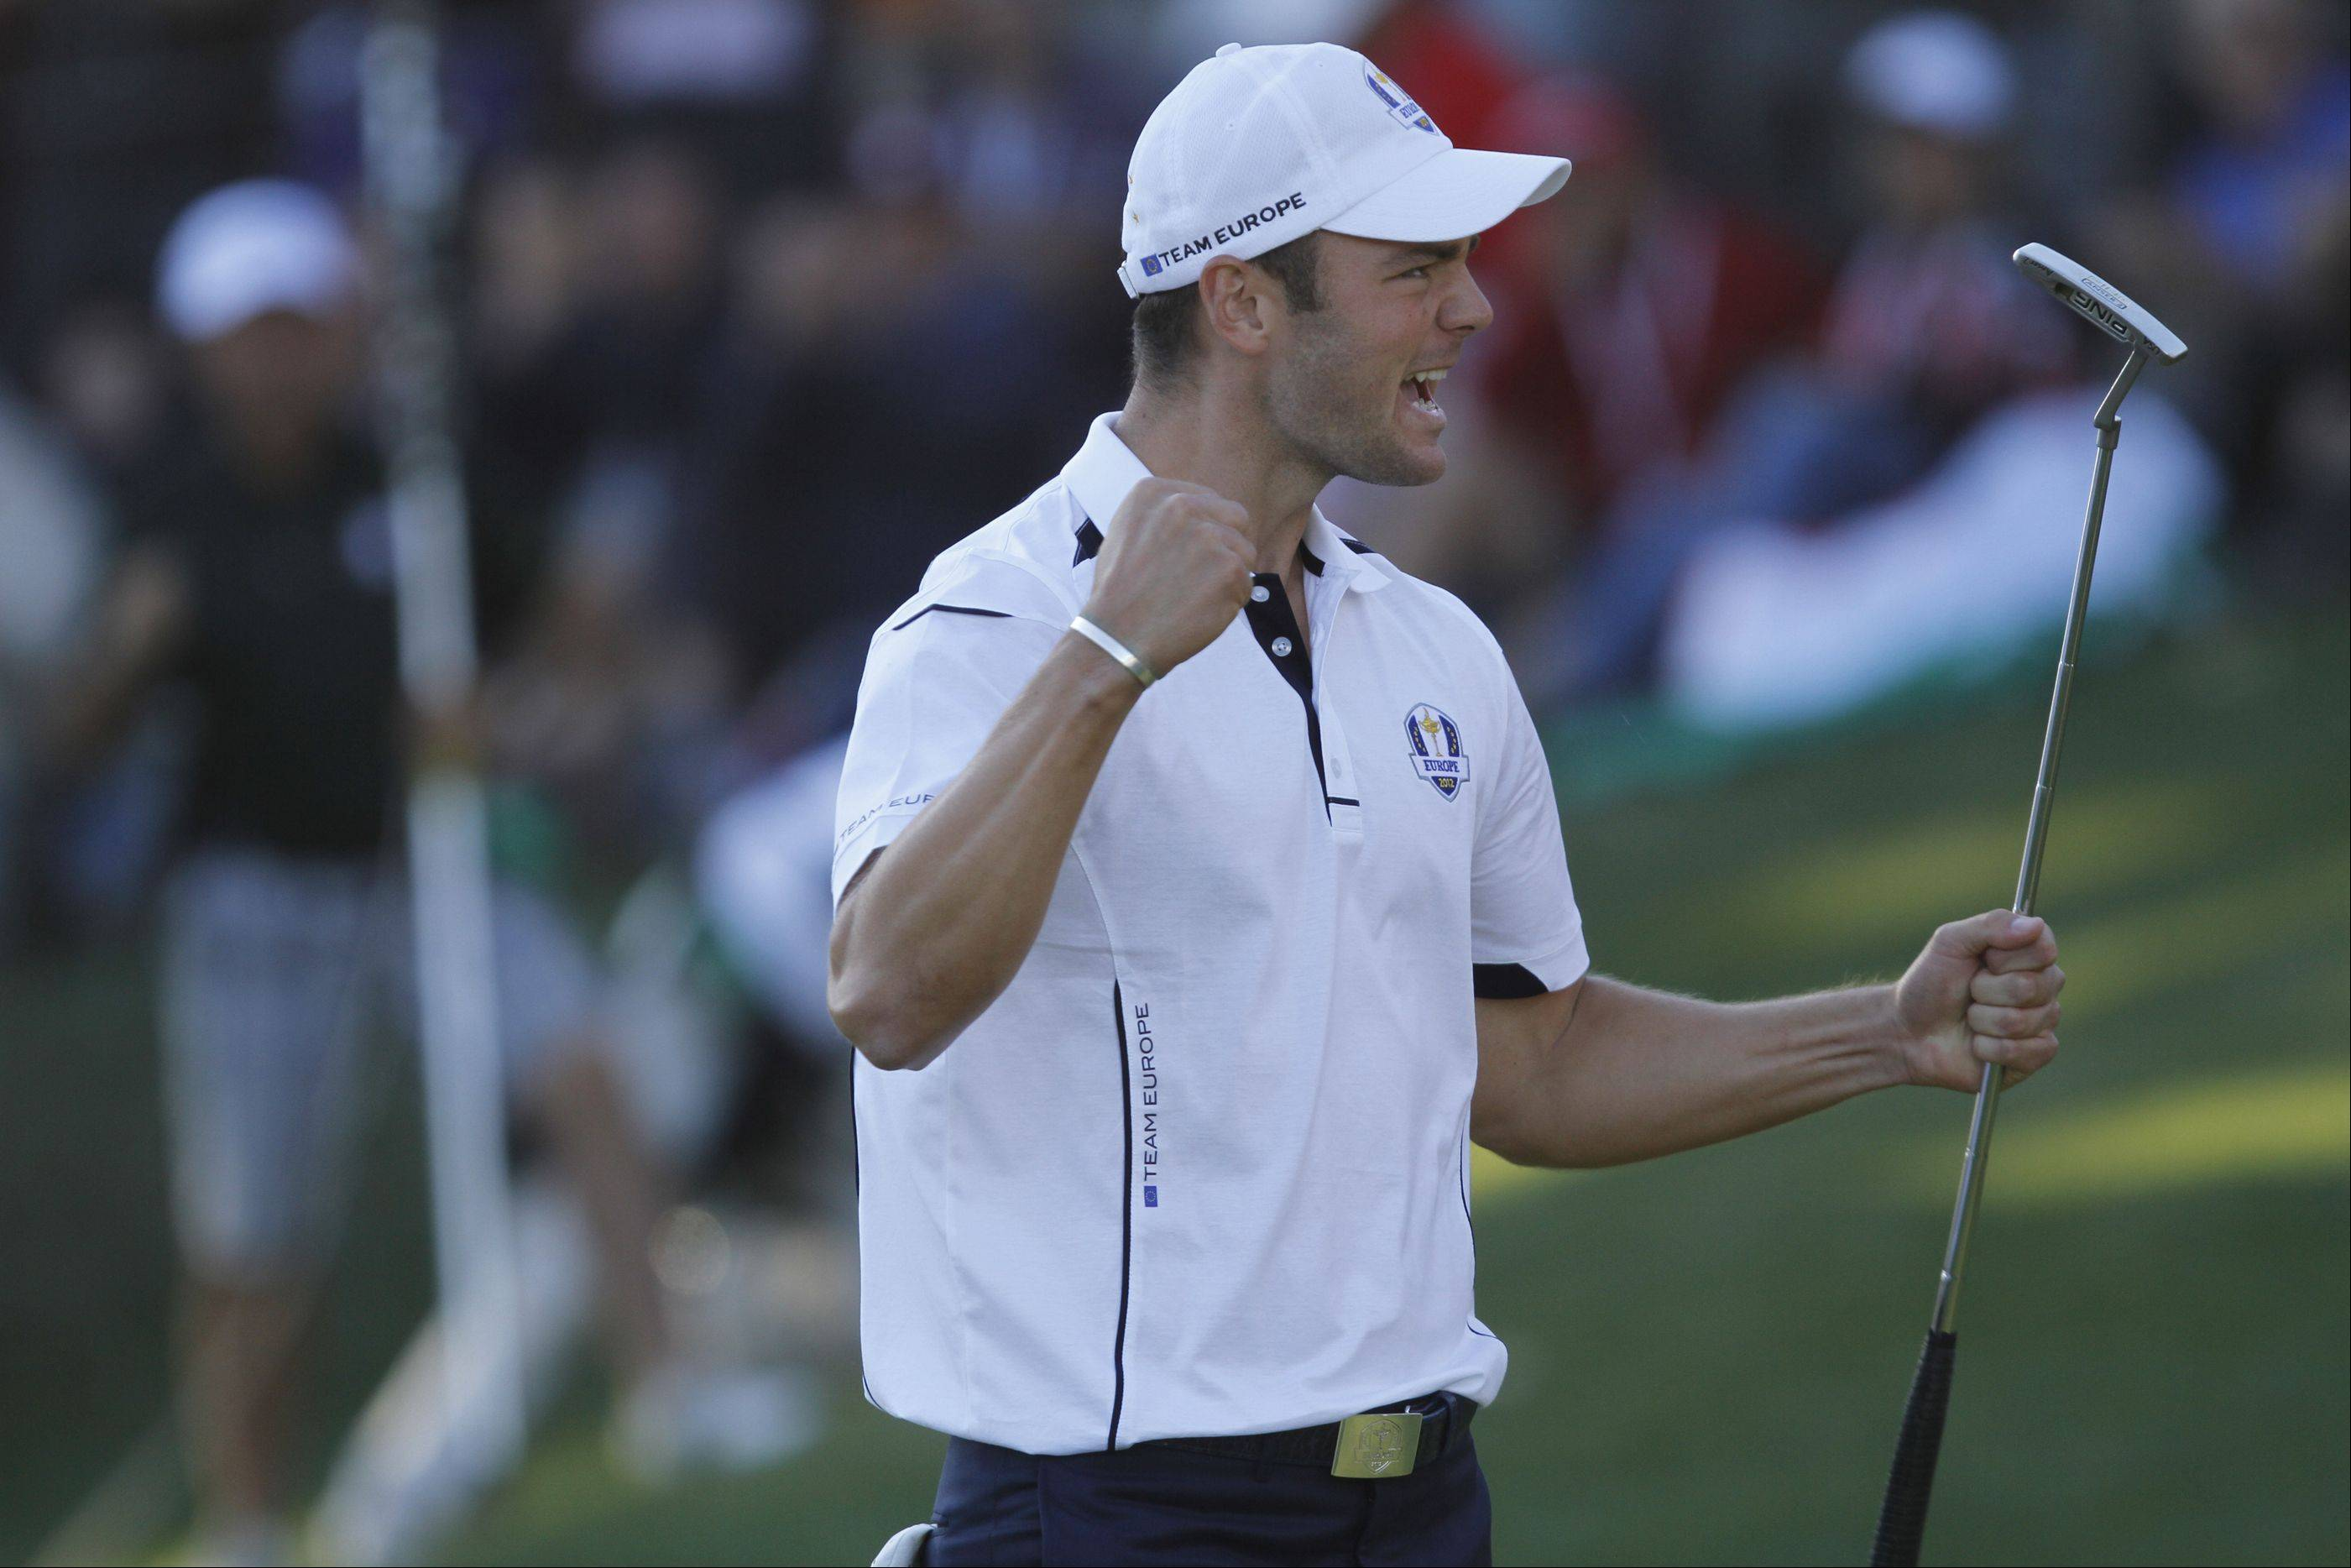 After attitude check, Kaymer cashes in with clincher